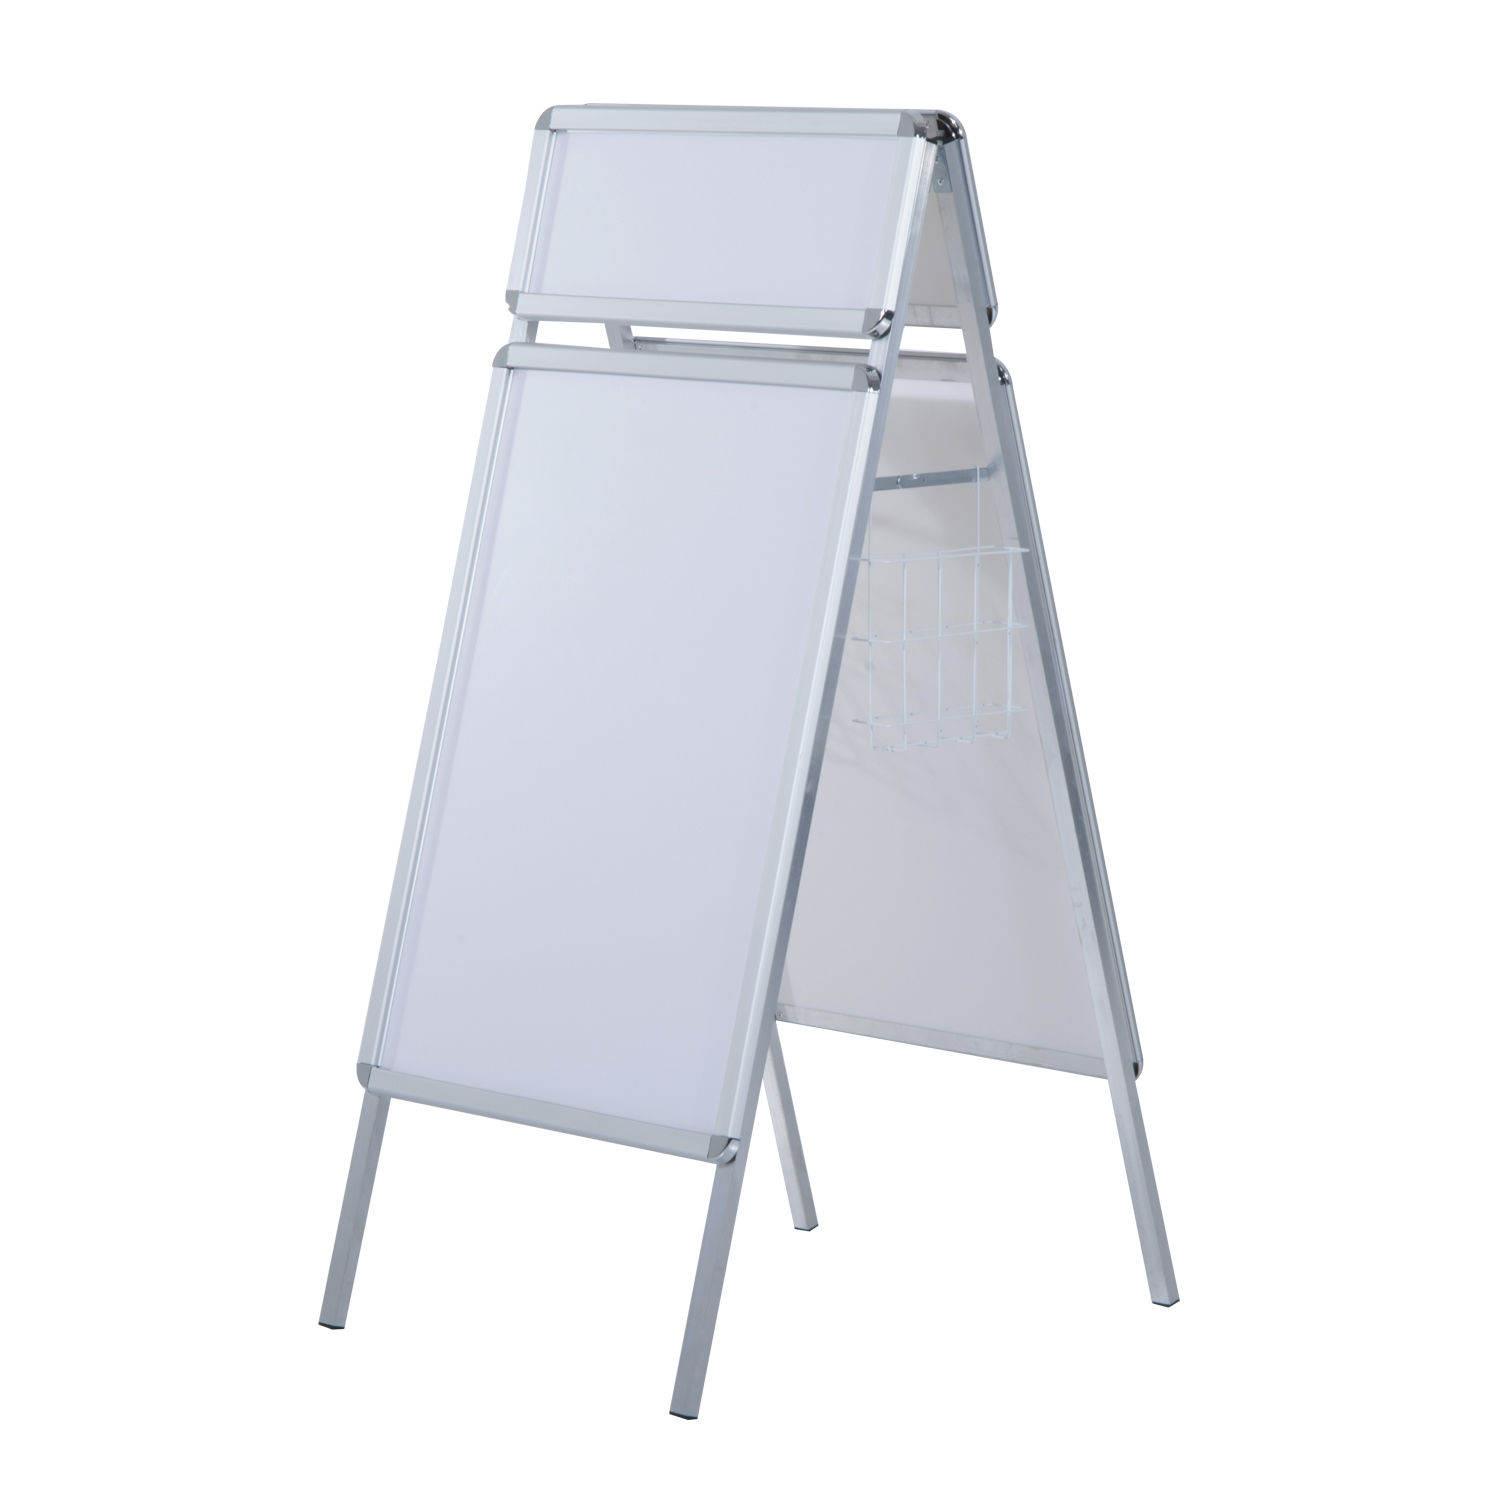 Poster Stand Display Snap Pavement Sign Aluminum Frame Board